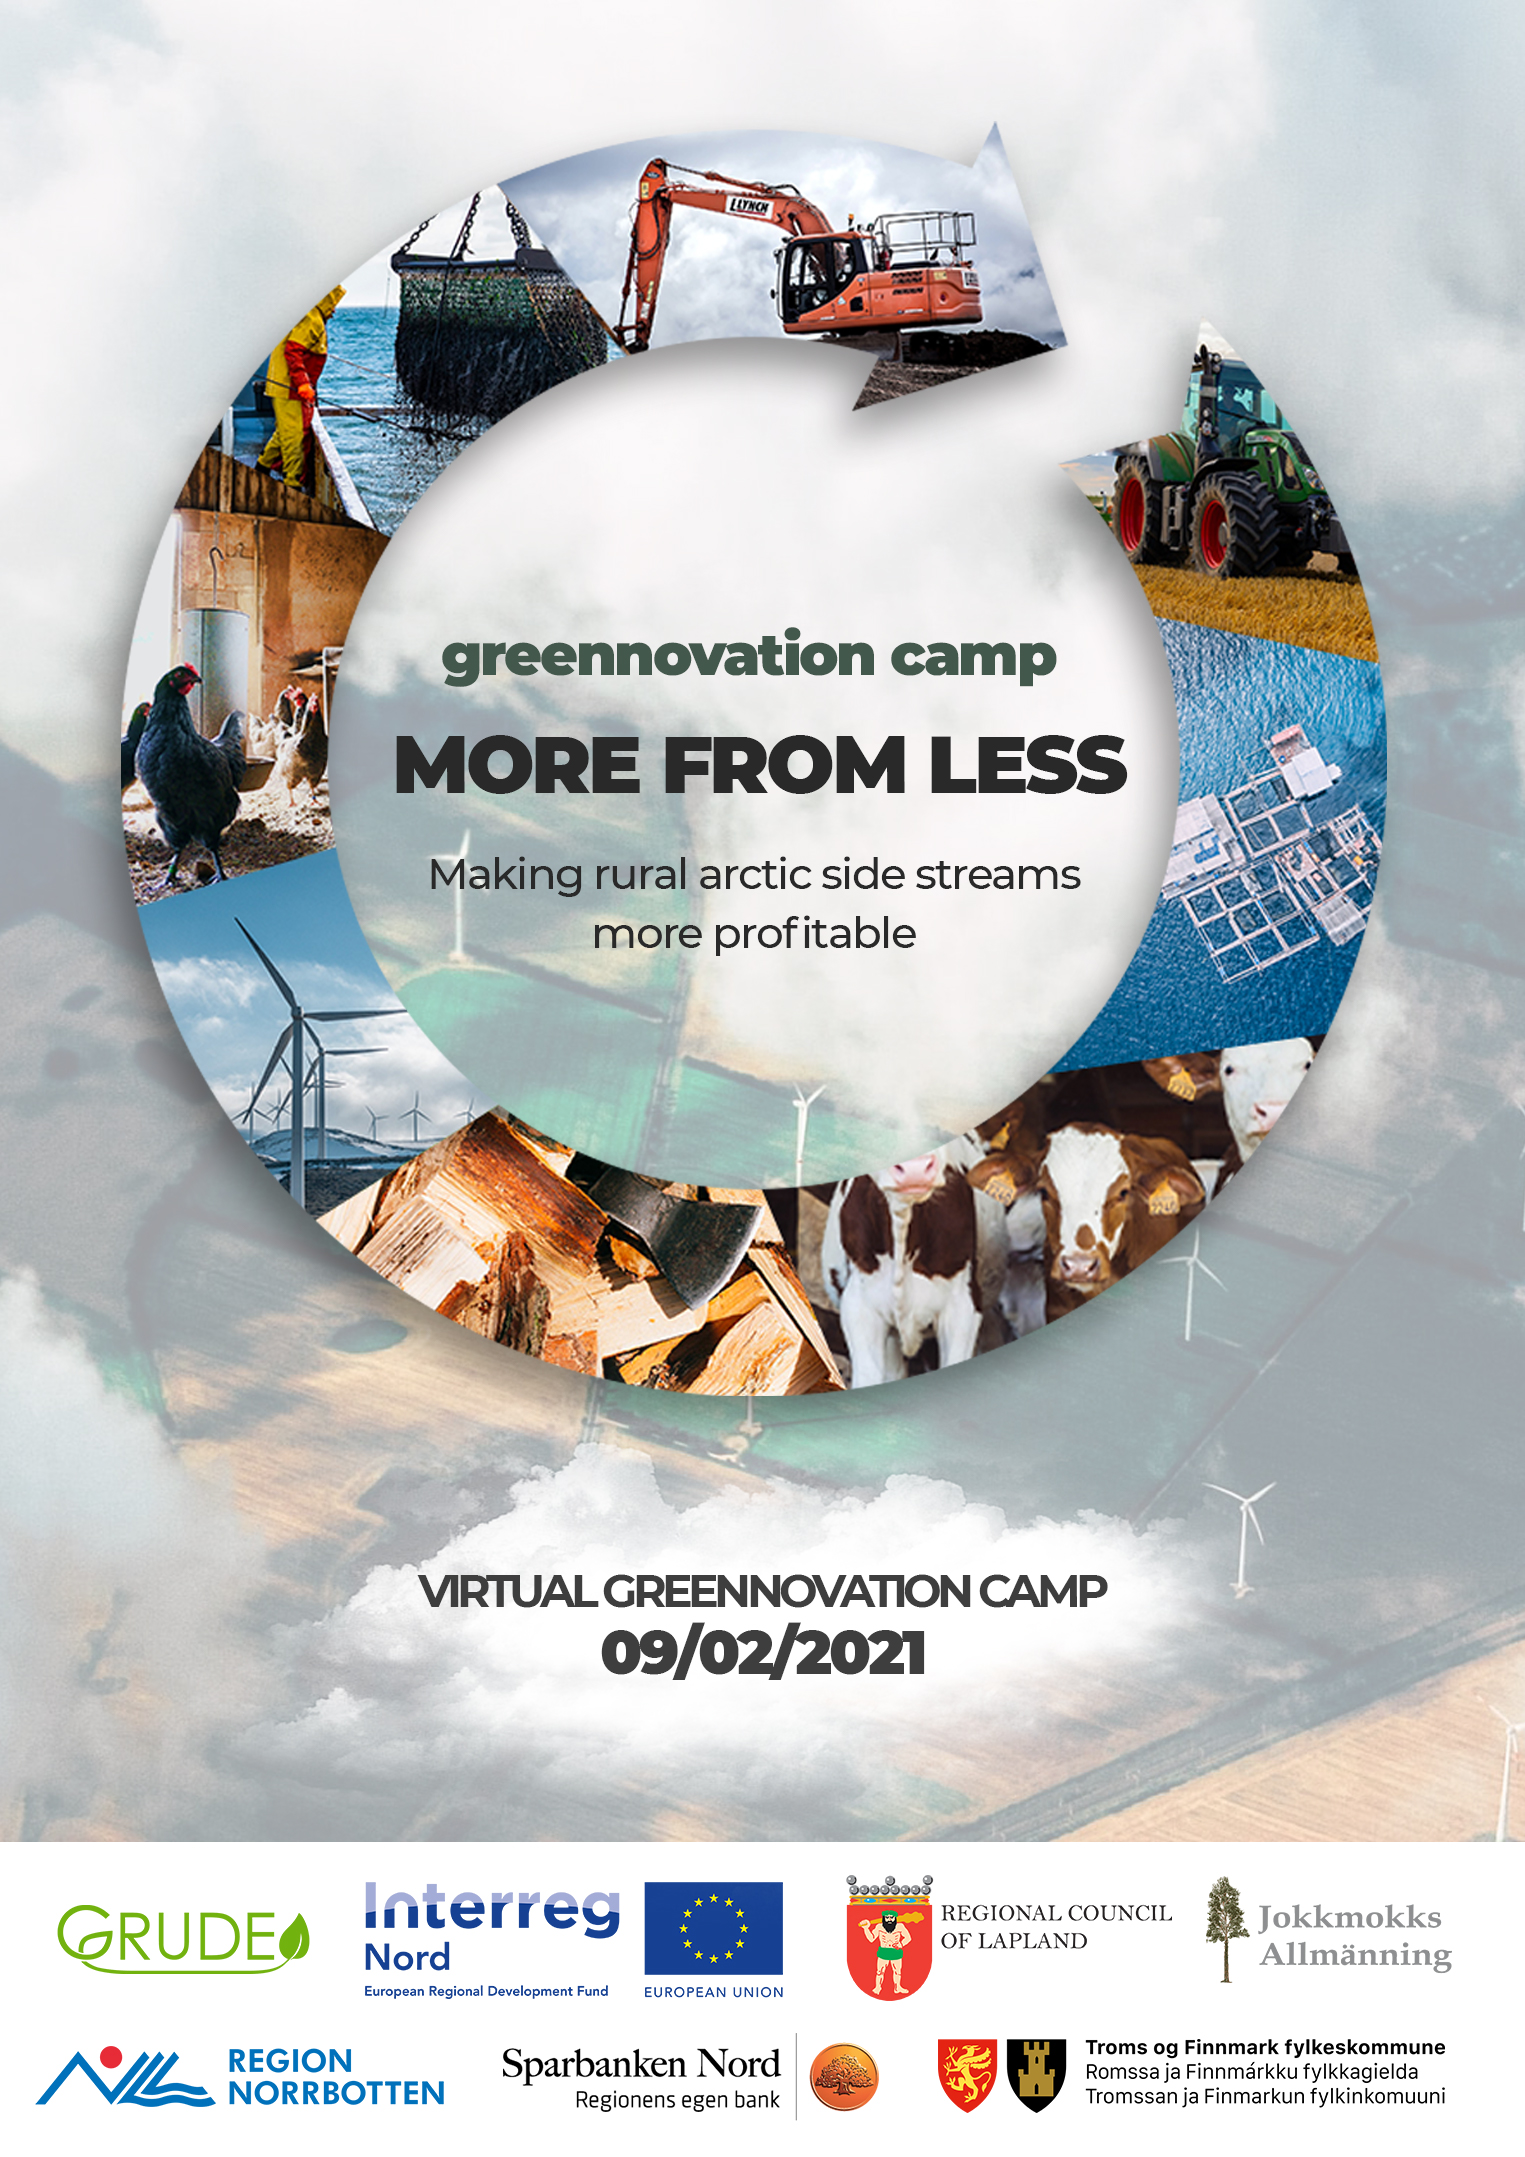 More from less – Greennovation camp 09/02/2021